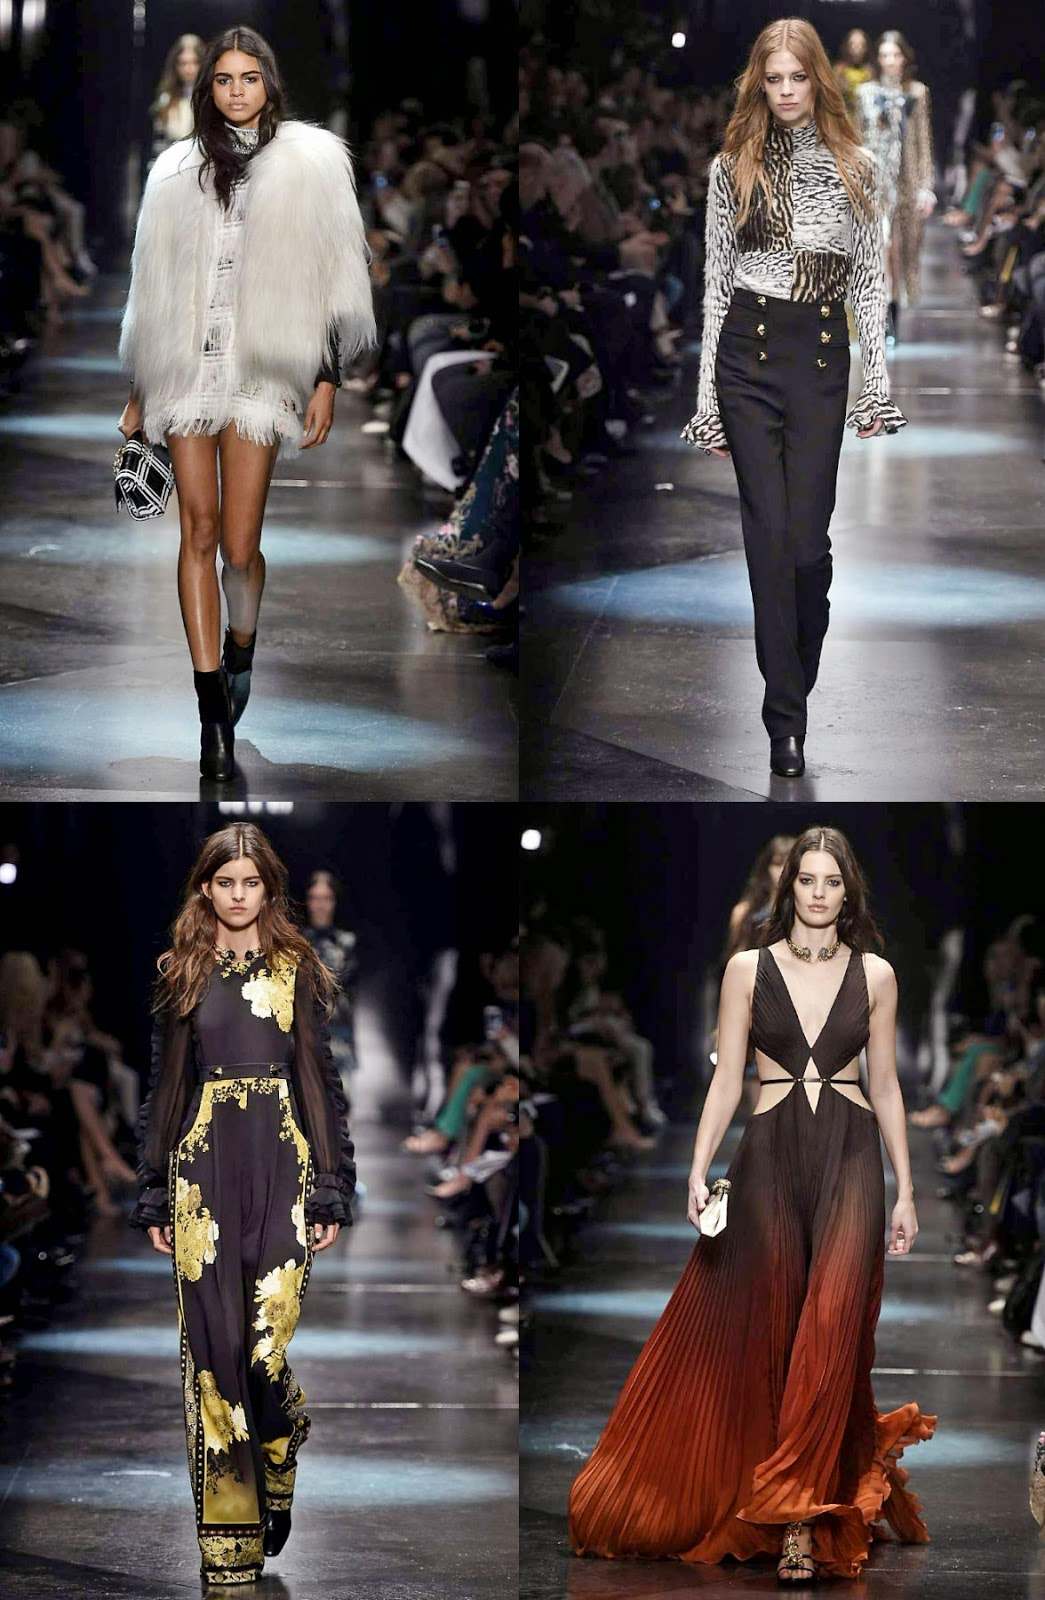 Eniwhere Fashion - Milano Fashion Week - Roberto Cavalli - Fall Winter 2015-2016